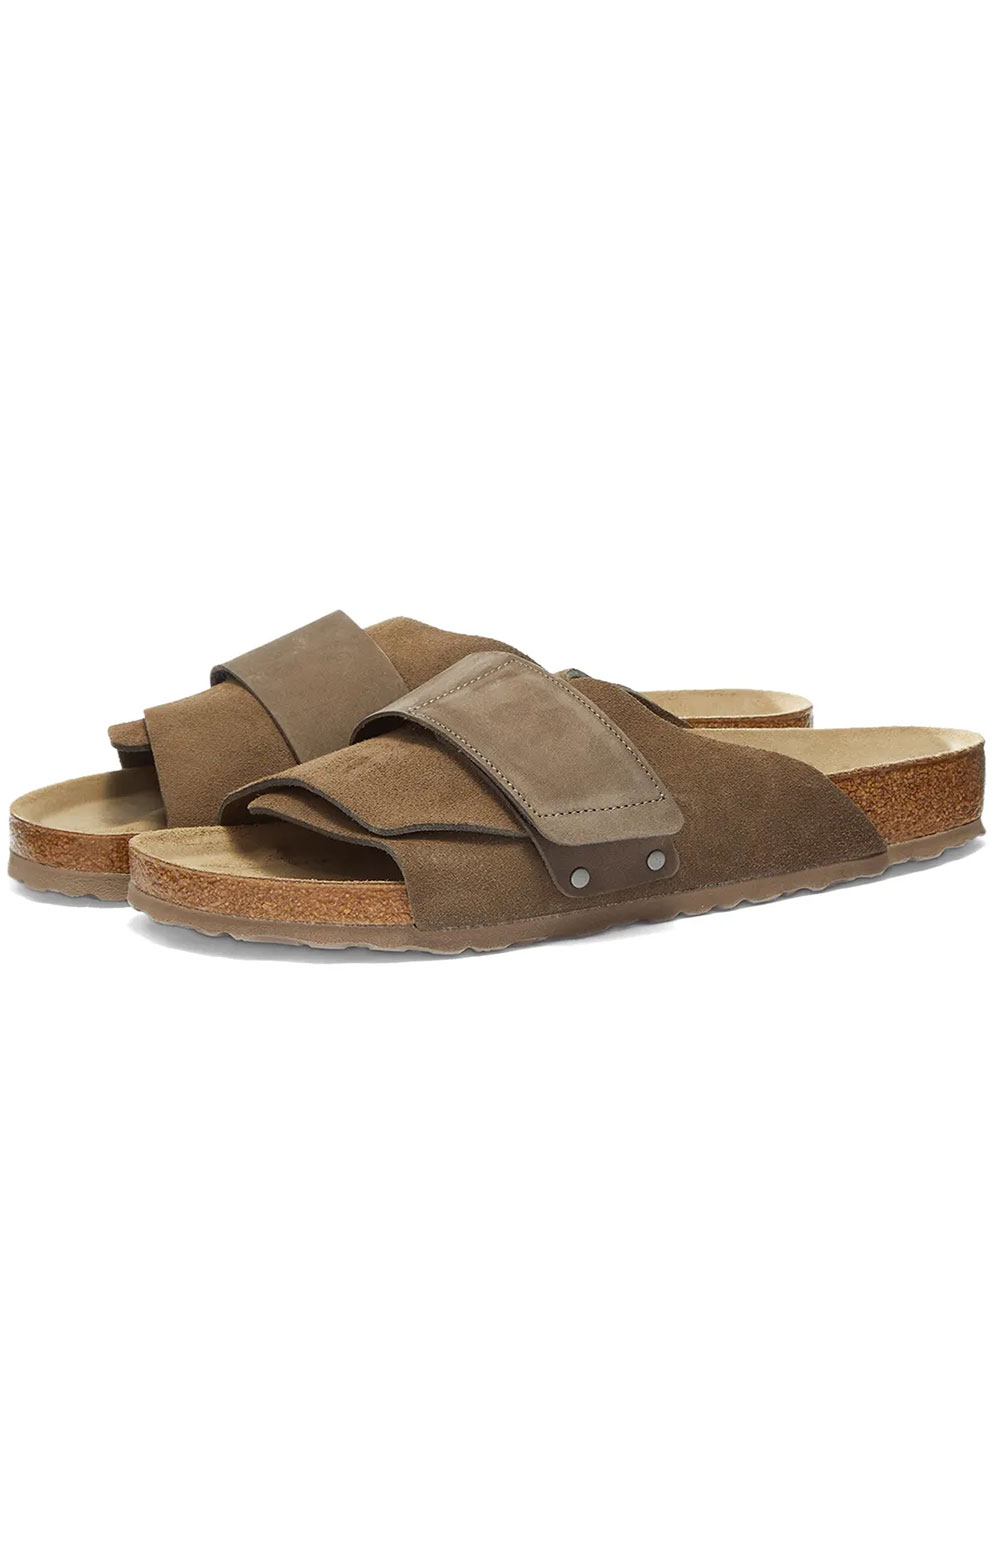 (1017501) Kyoto Sandals - Concrete Grey Suede